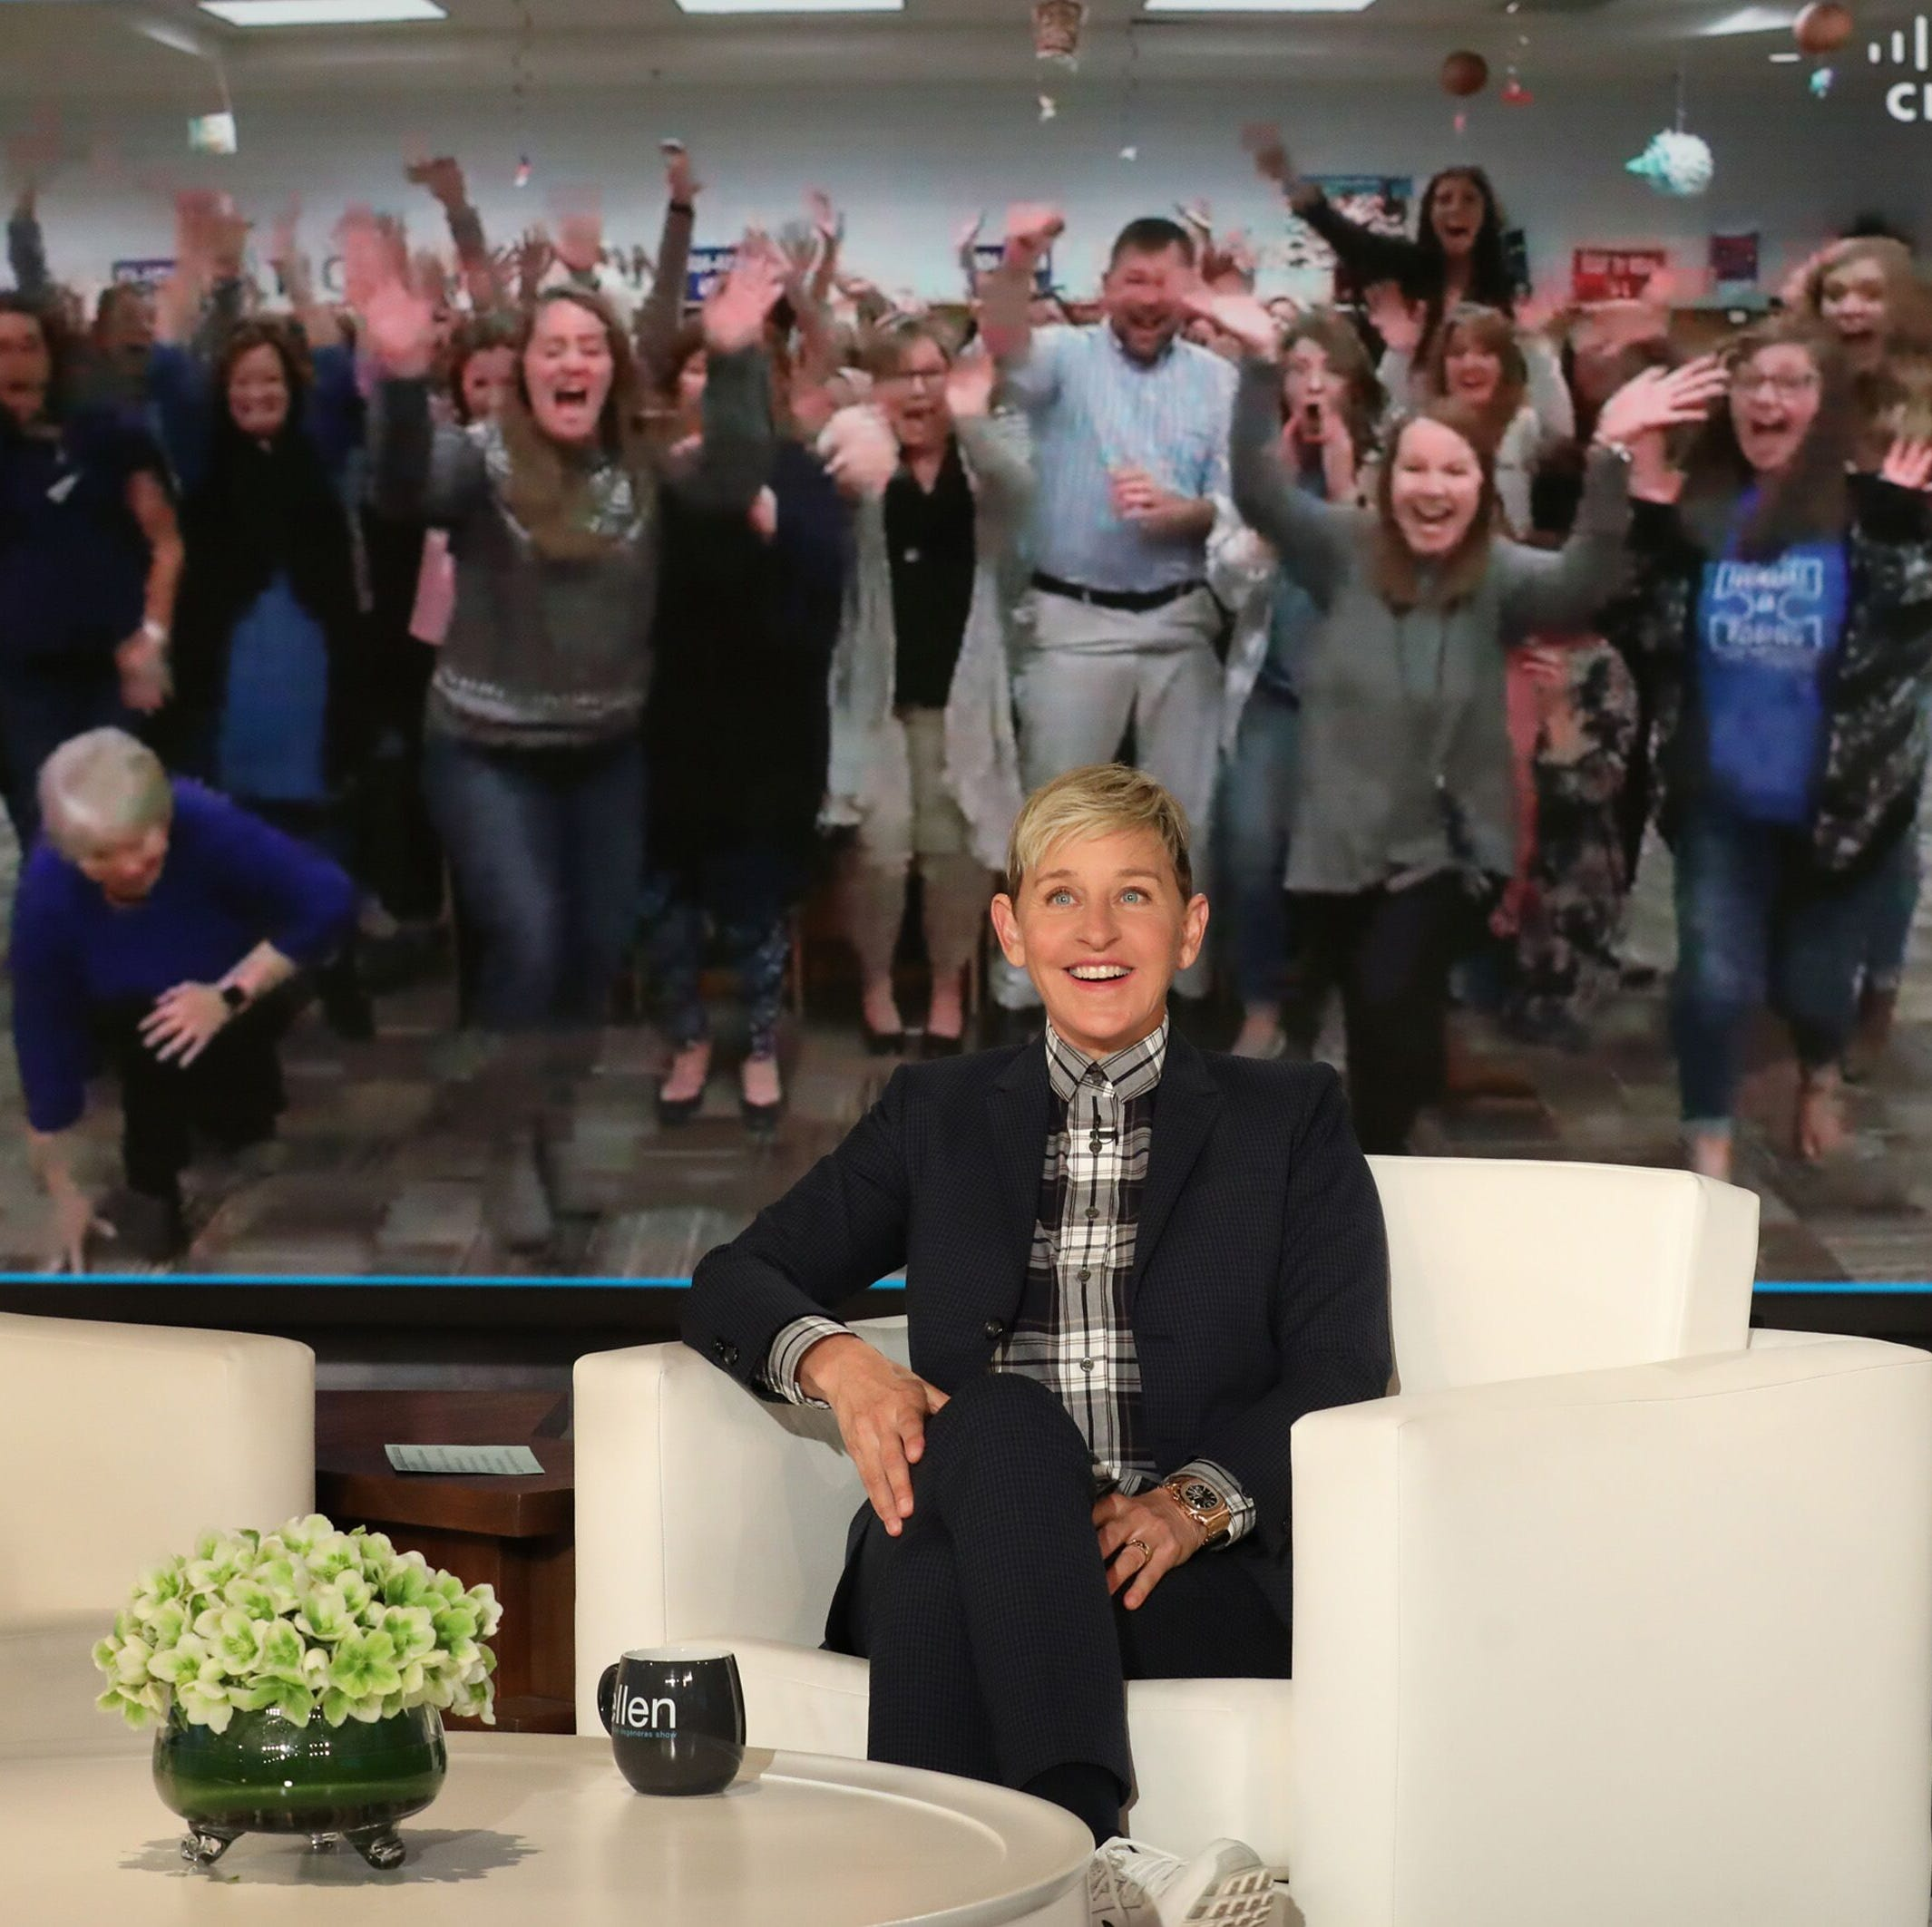 Gibbs Elementary teachers get a tasty surprise from 'Ellen' - and some cash